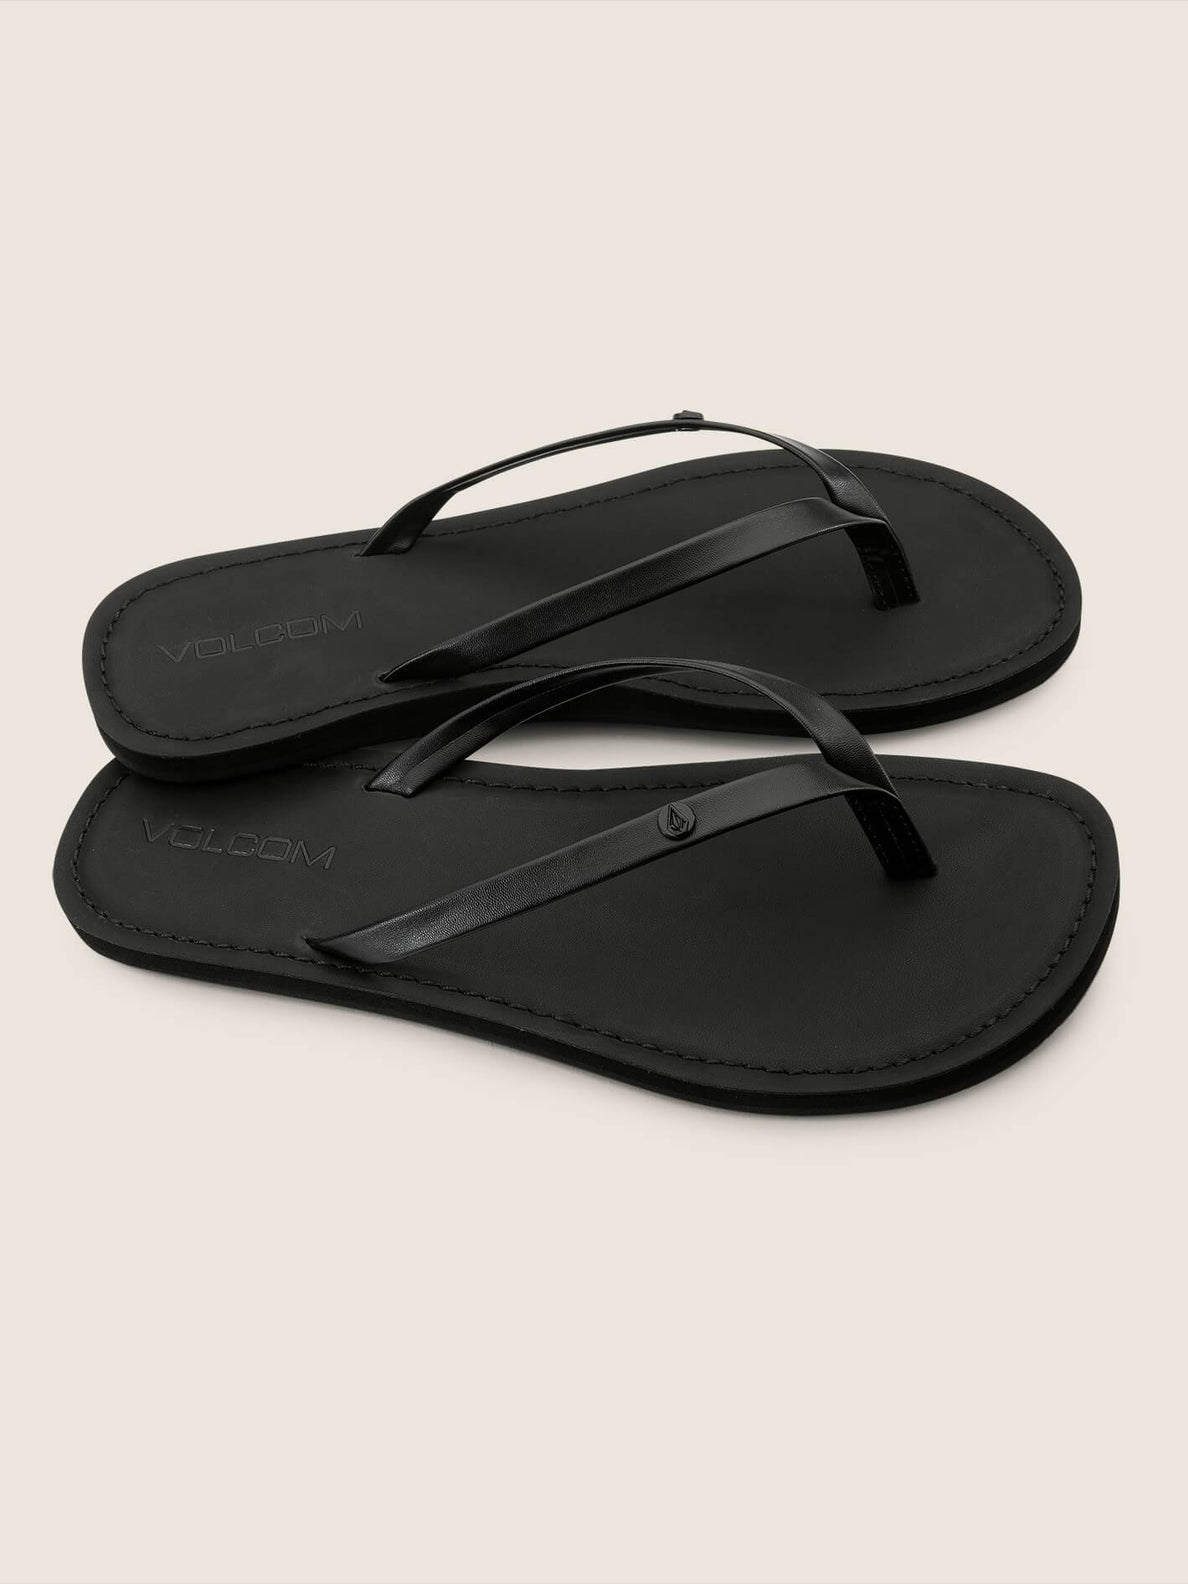 Lagos Sandals In Black Combo, Front View